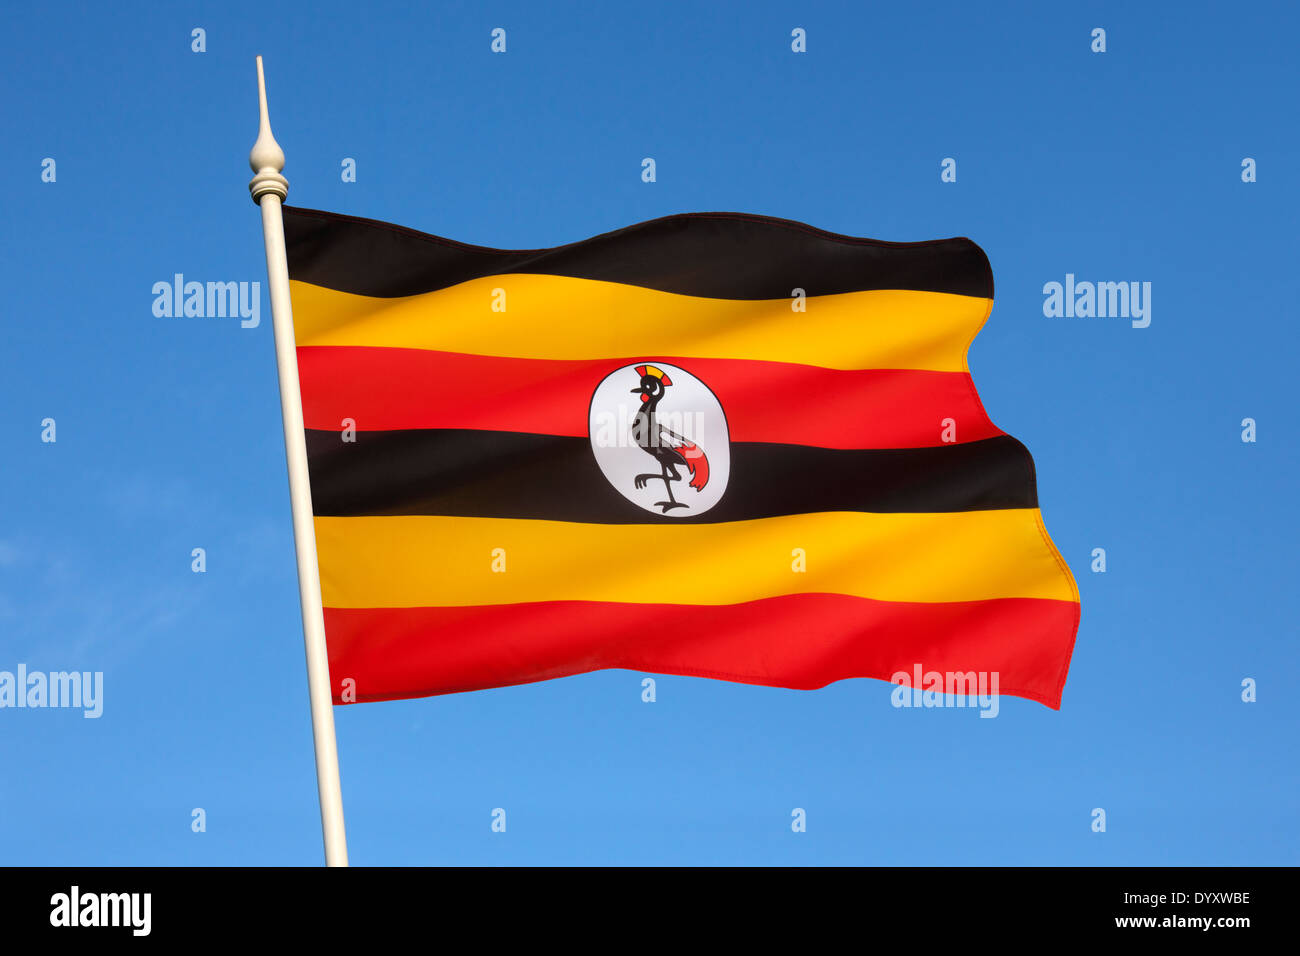 Le drapeau de l'Ouganda Photo Stock